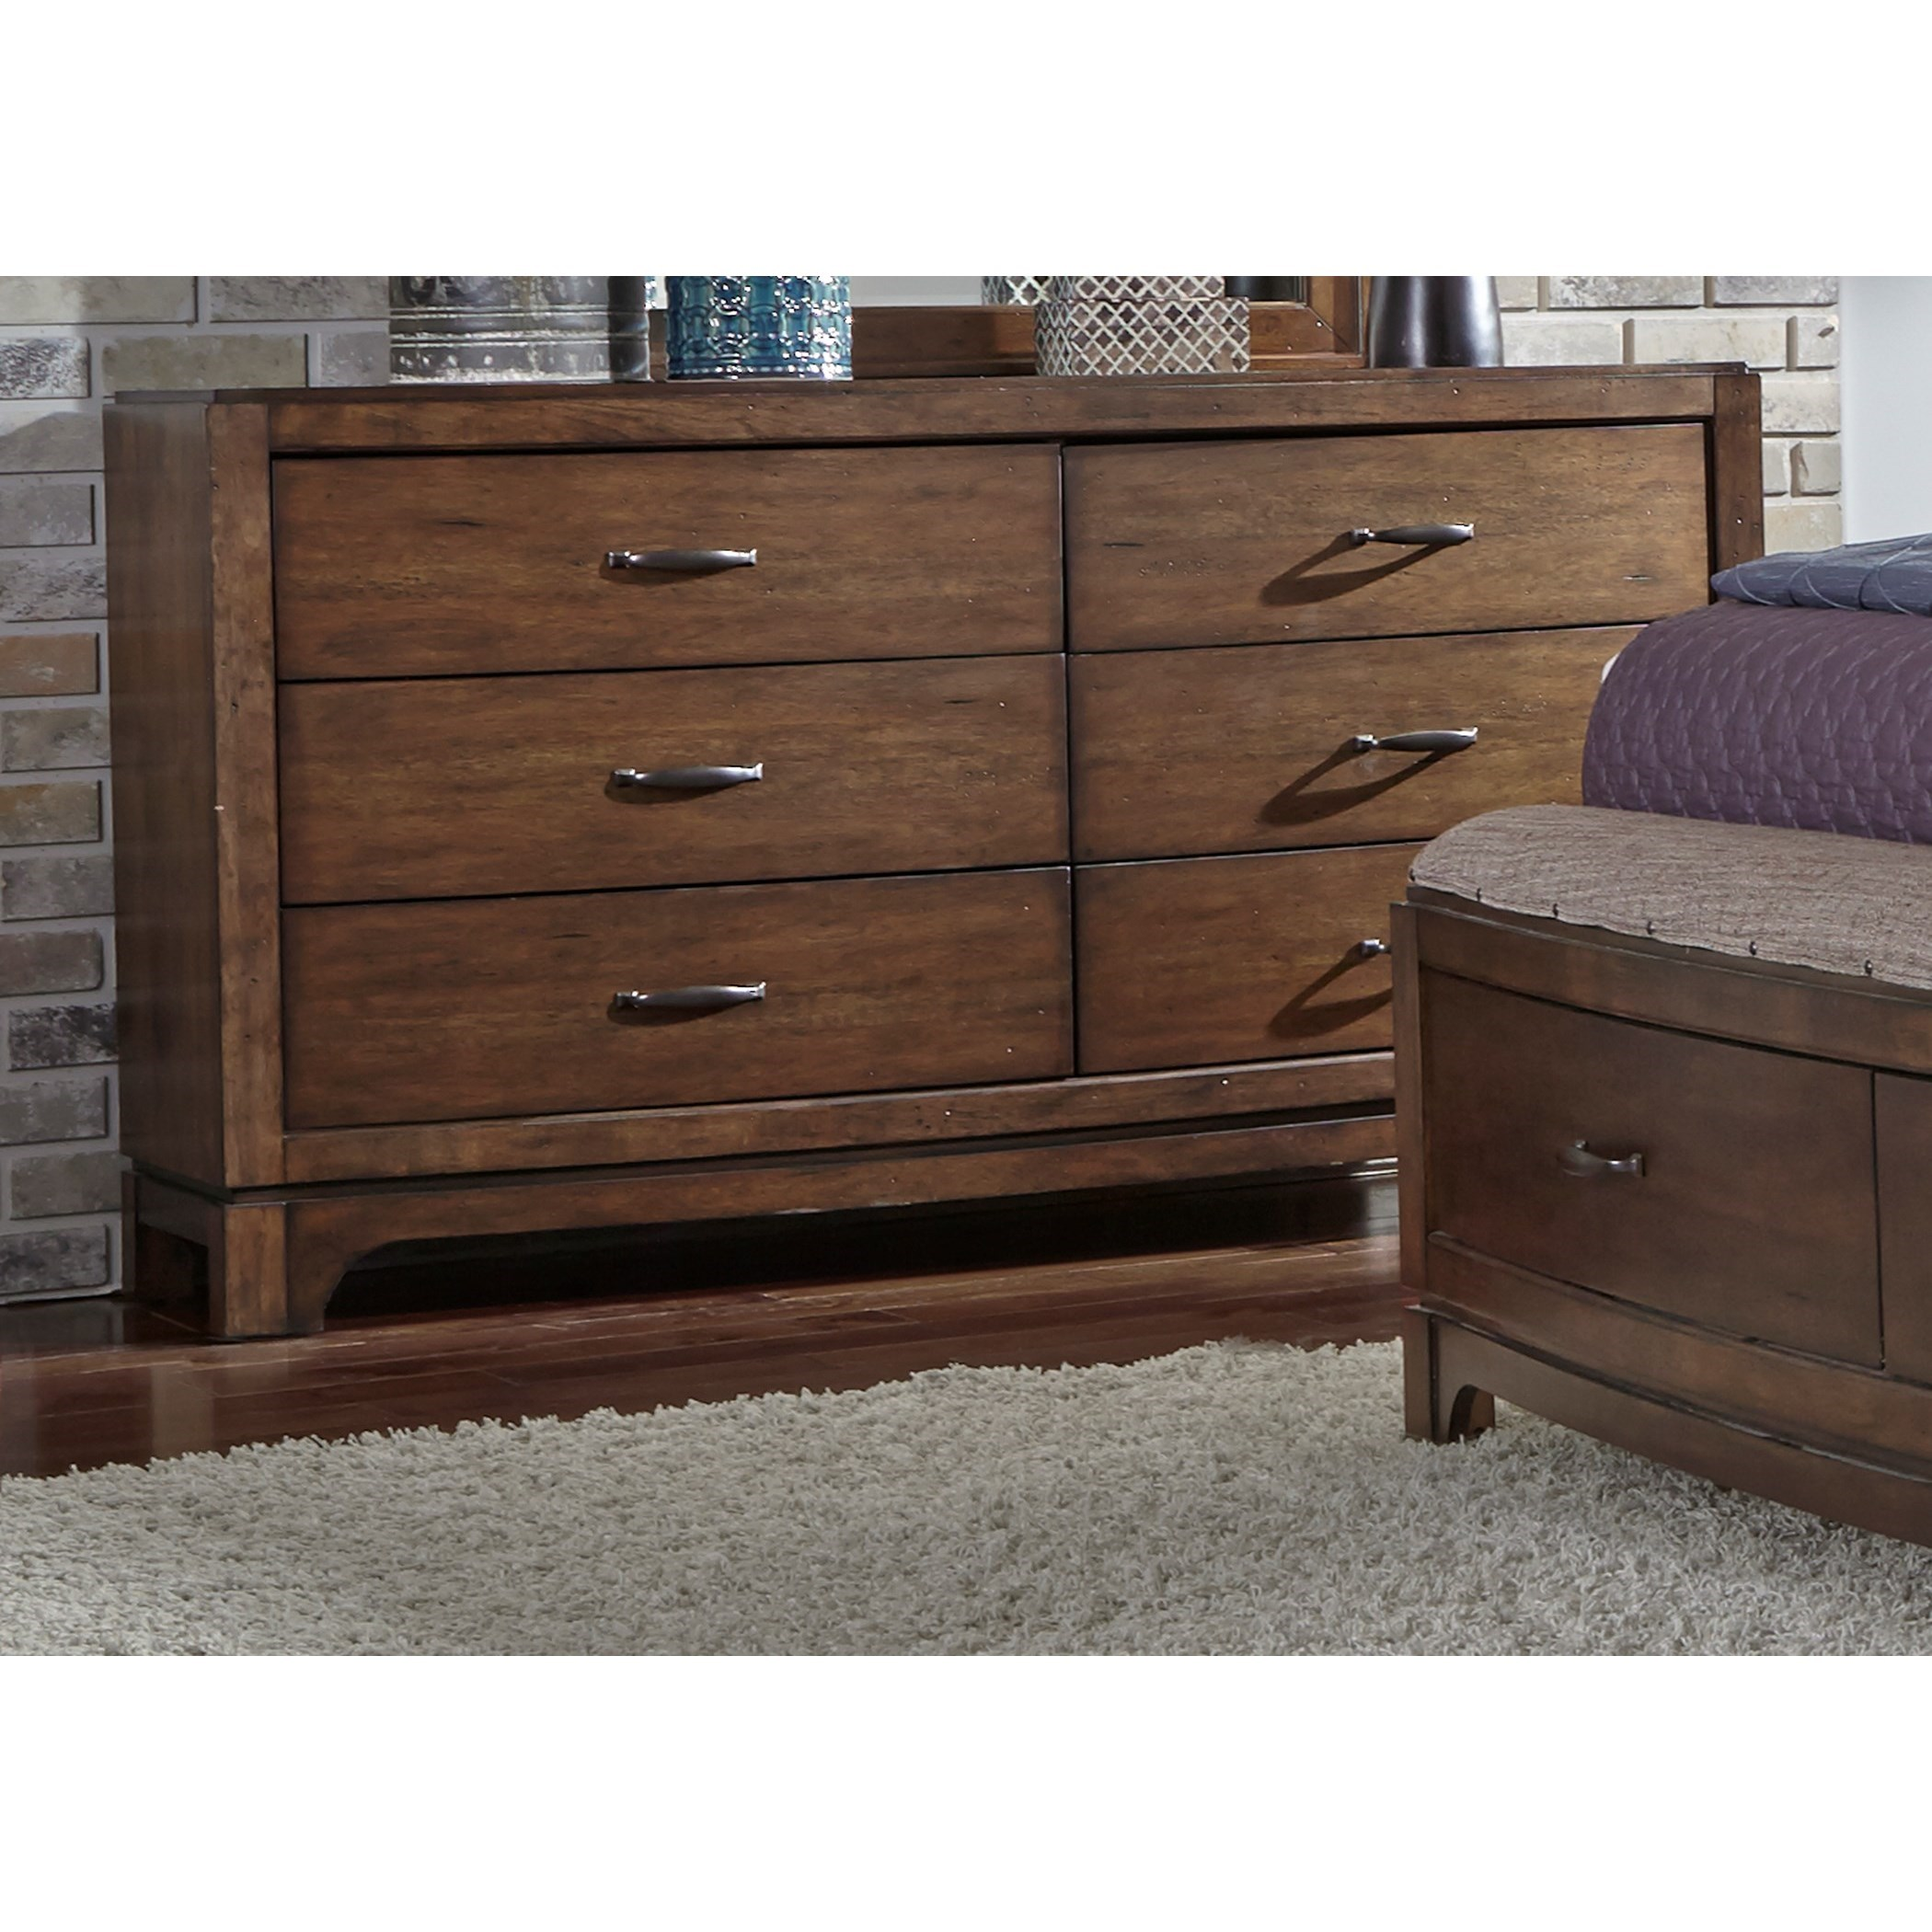 Liberty Furniture Avalon III 6 Drawer Dresser - Item Number: 705-BR31